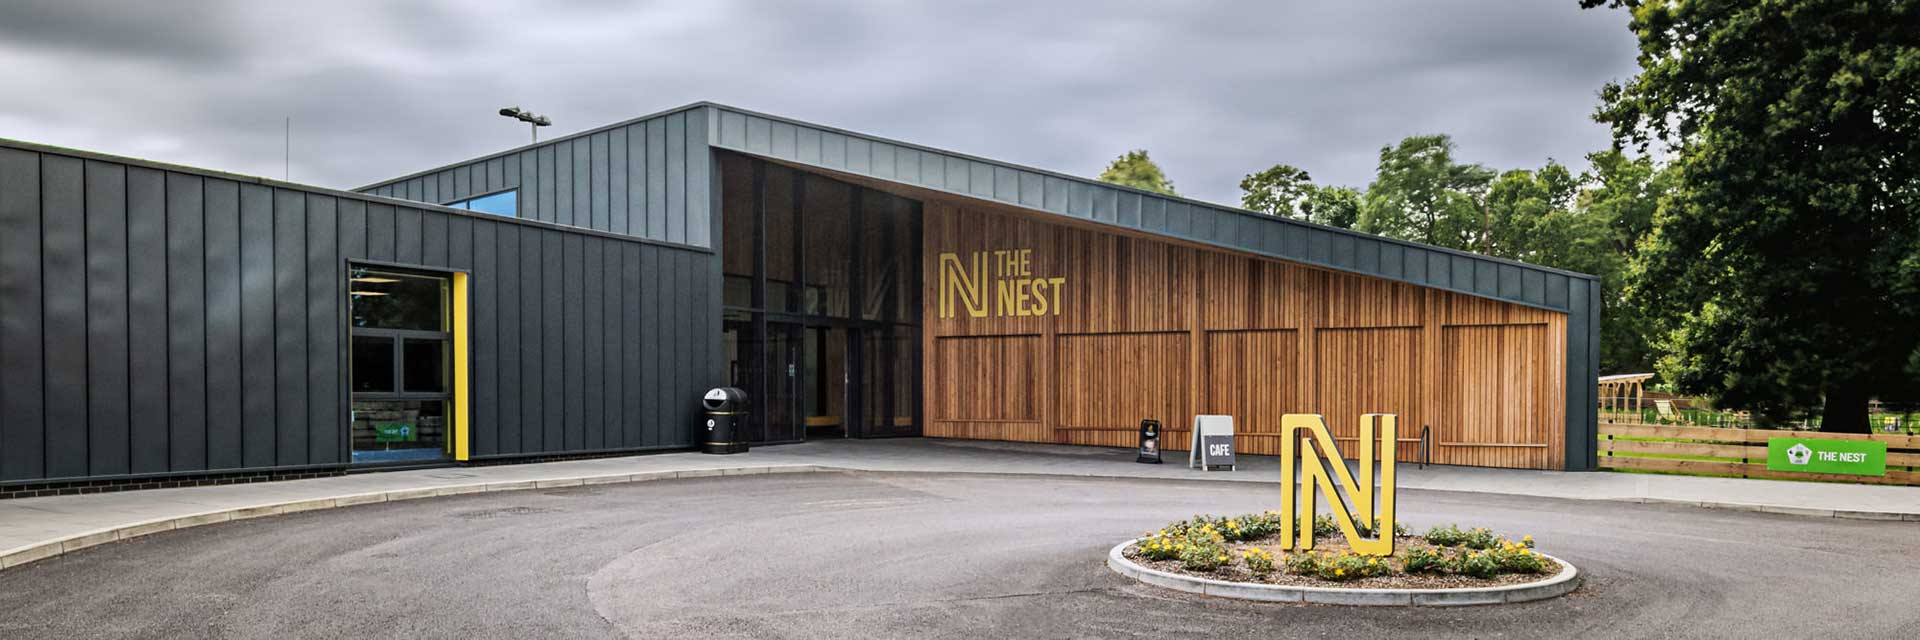 The nest hub entrance and roundabout - the hub building